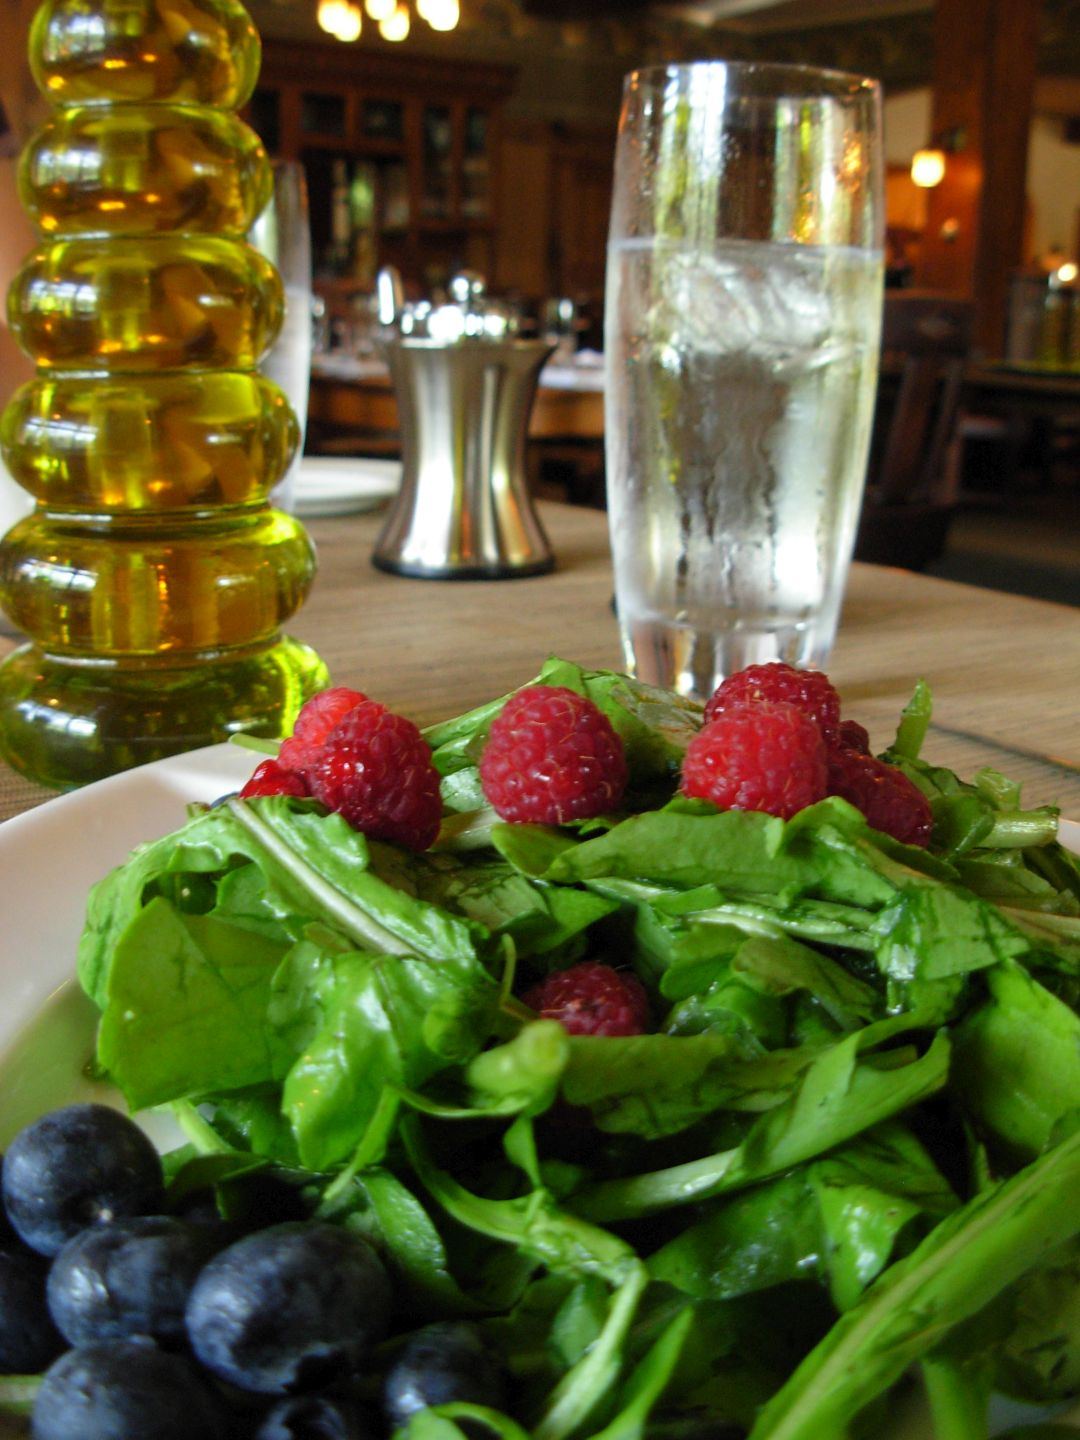 Salad of Mache with Fresh Berries